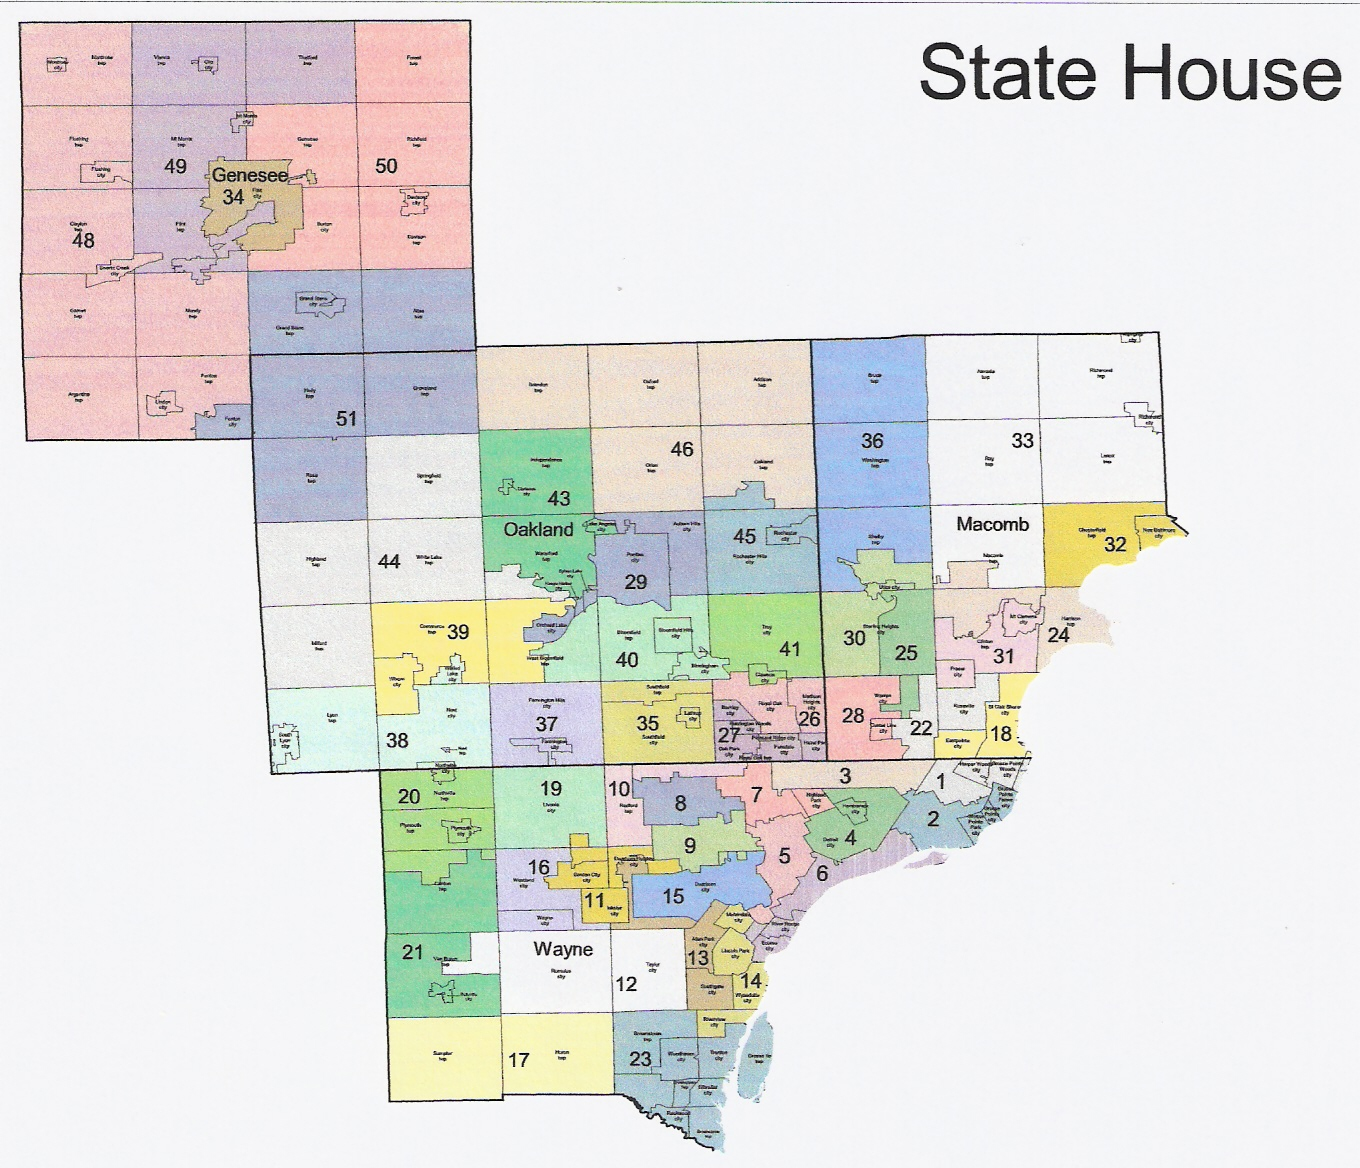 Michigan Redistricting: Official Republican State House Map Released